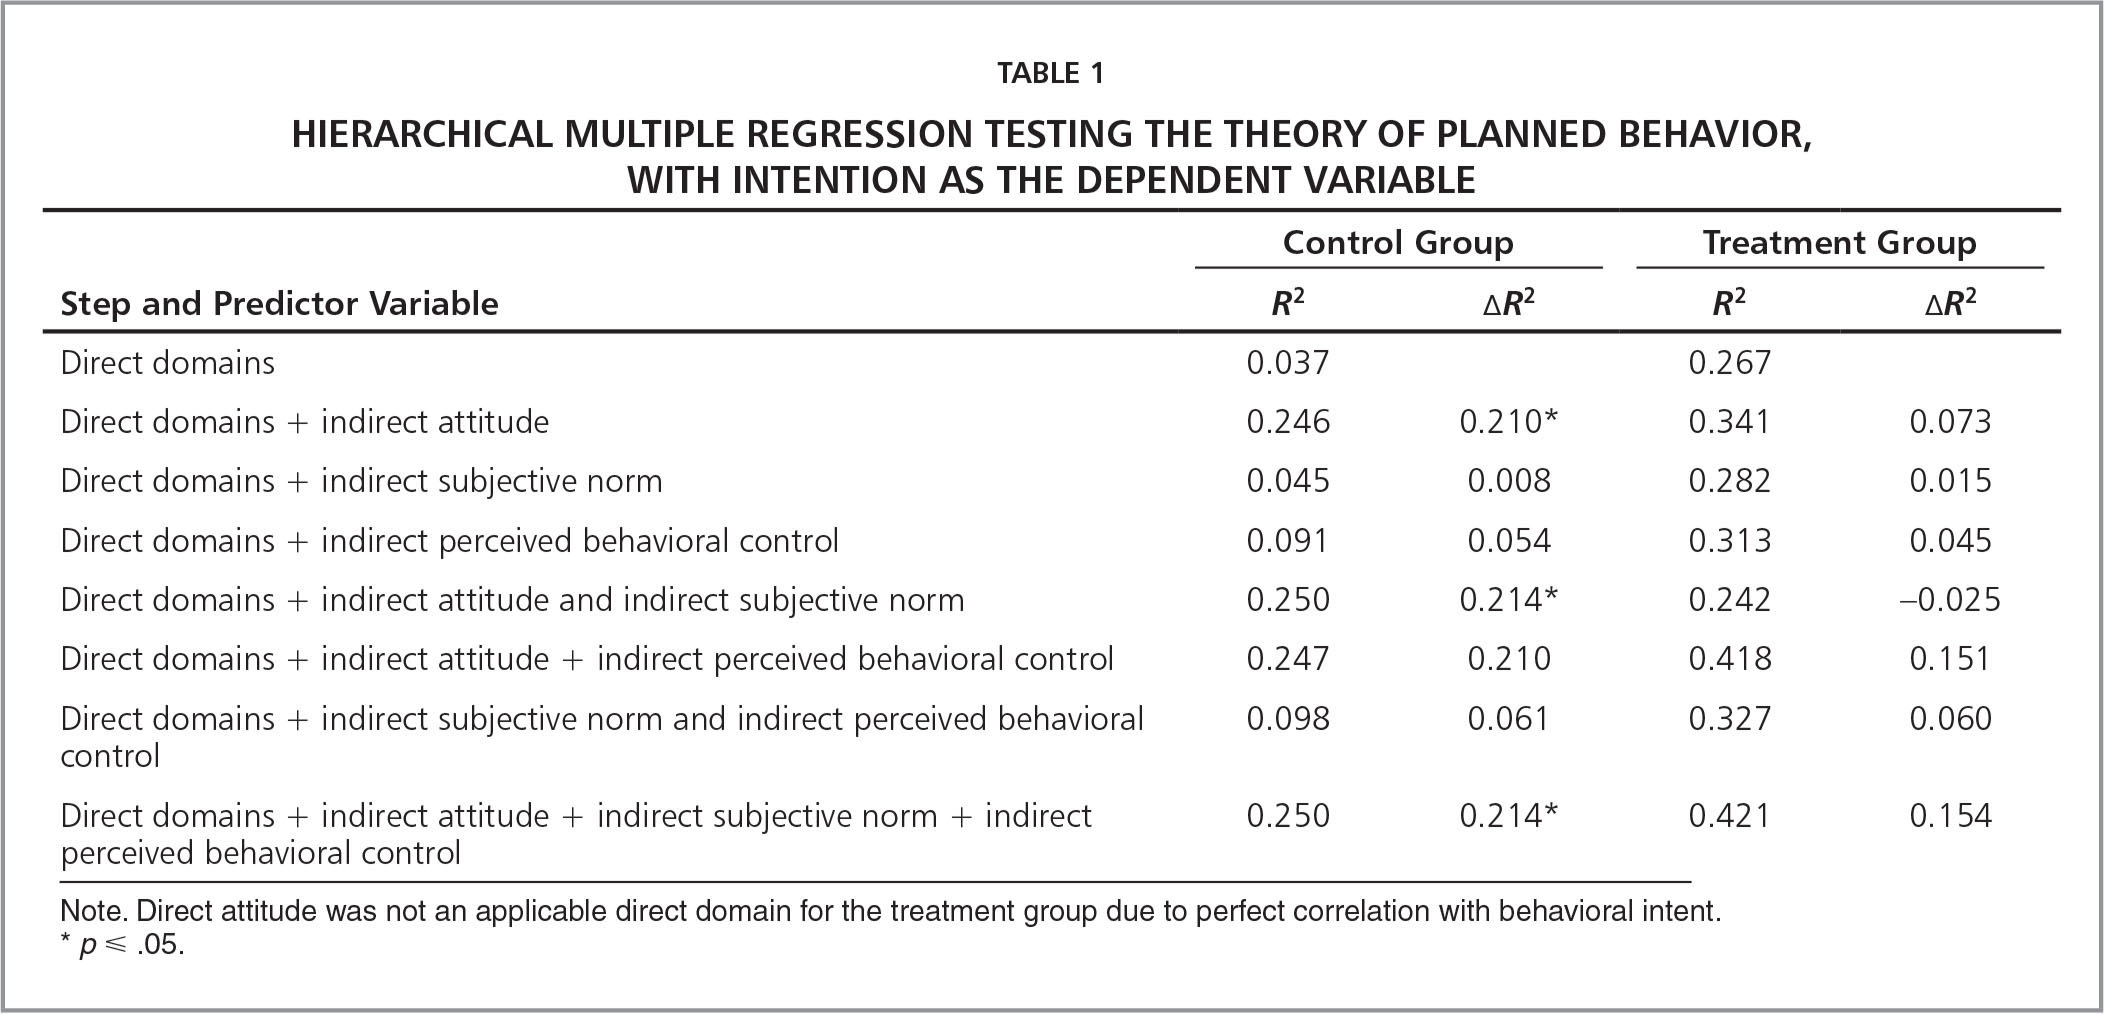 Hierarchical Multiple Regression Testing the Theory of Planned Behavior, With Intention as the Dependent Variable